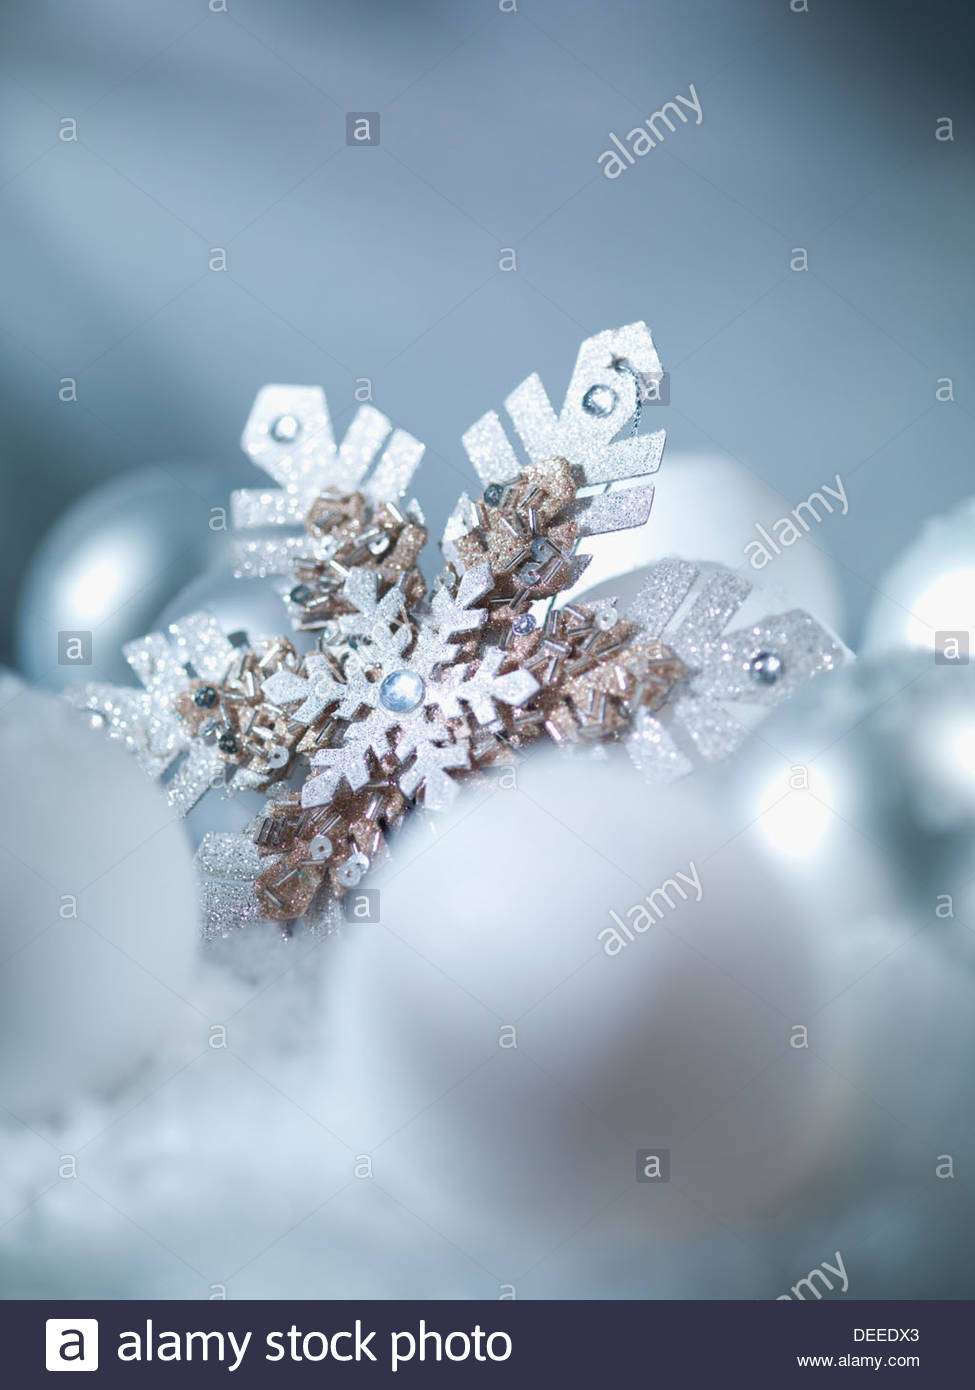 Pile of Christmas ornaments in snow - Stock Image